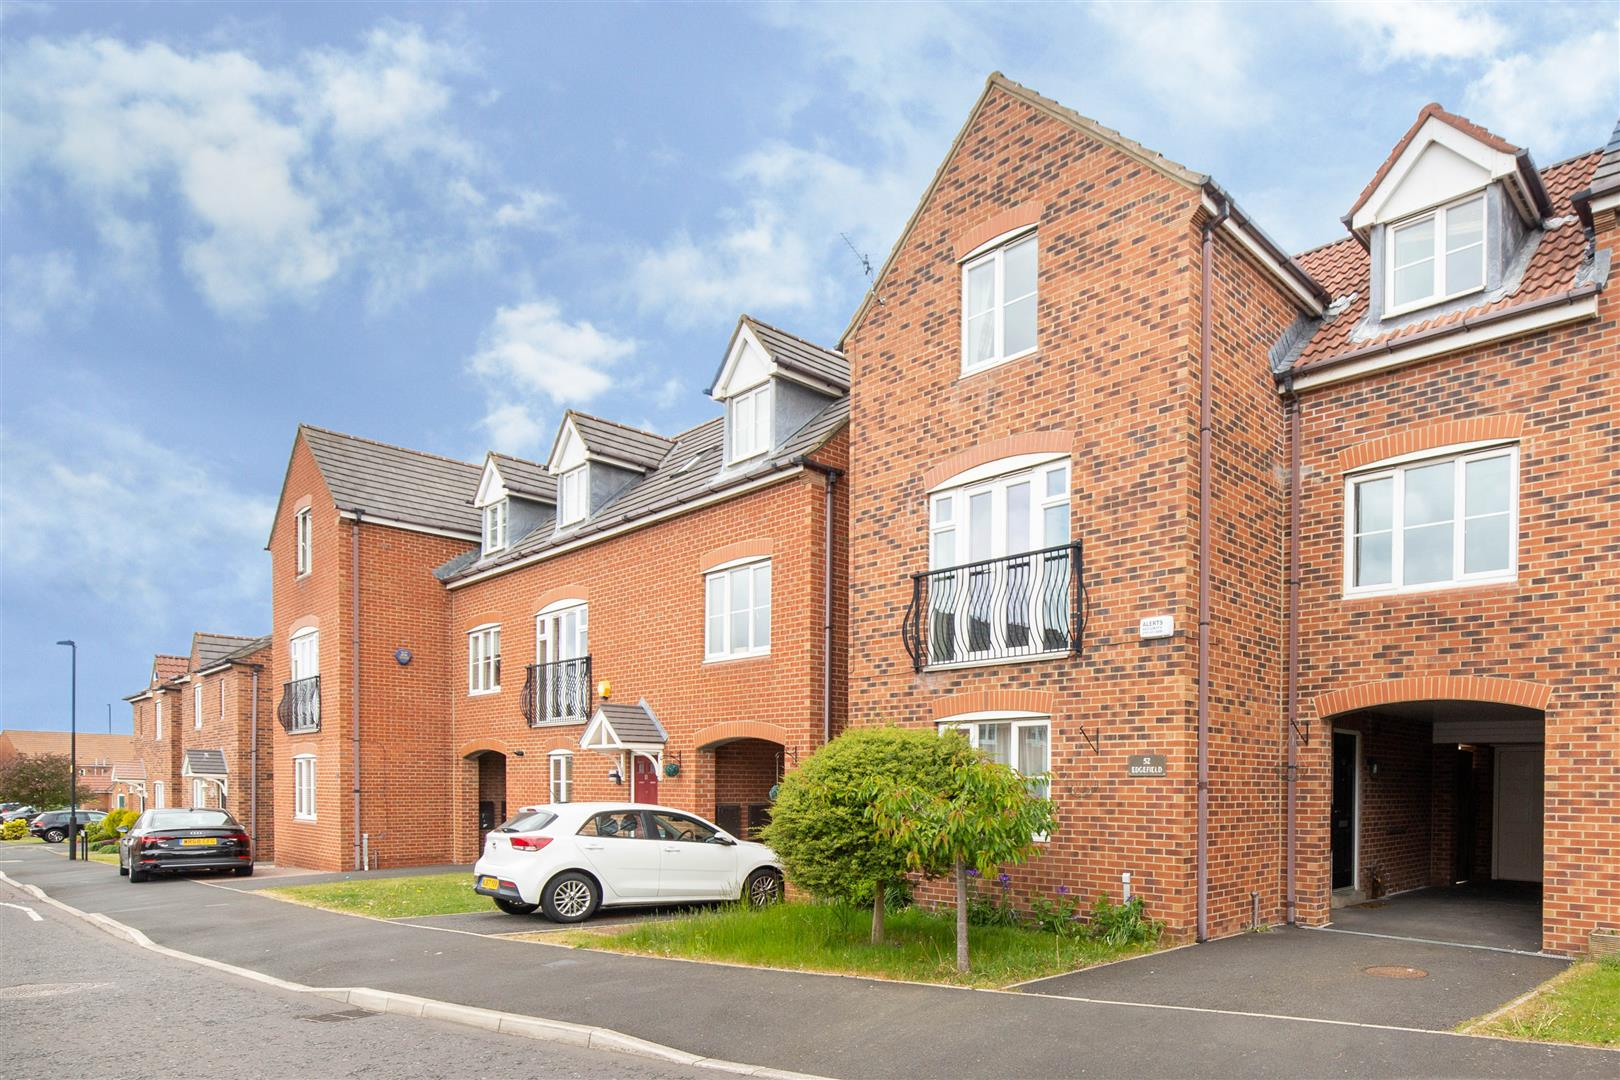 4 bed town house to rent in Newcastle Upon Tyne, NE27 0BT, NE27